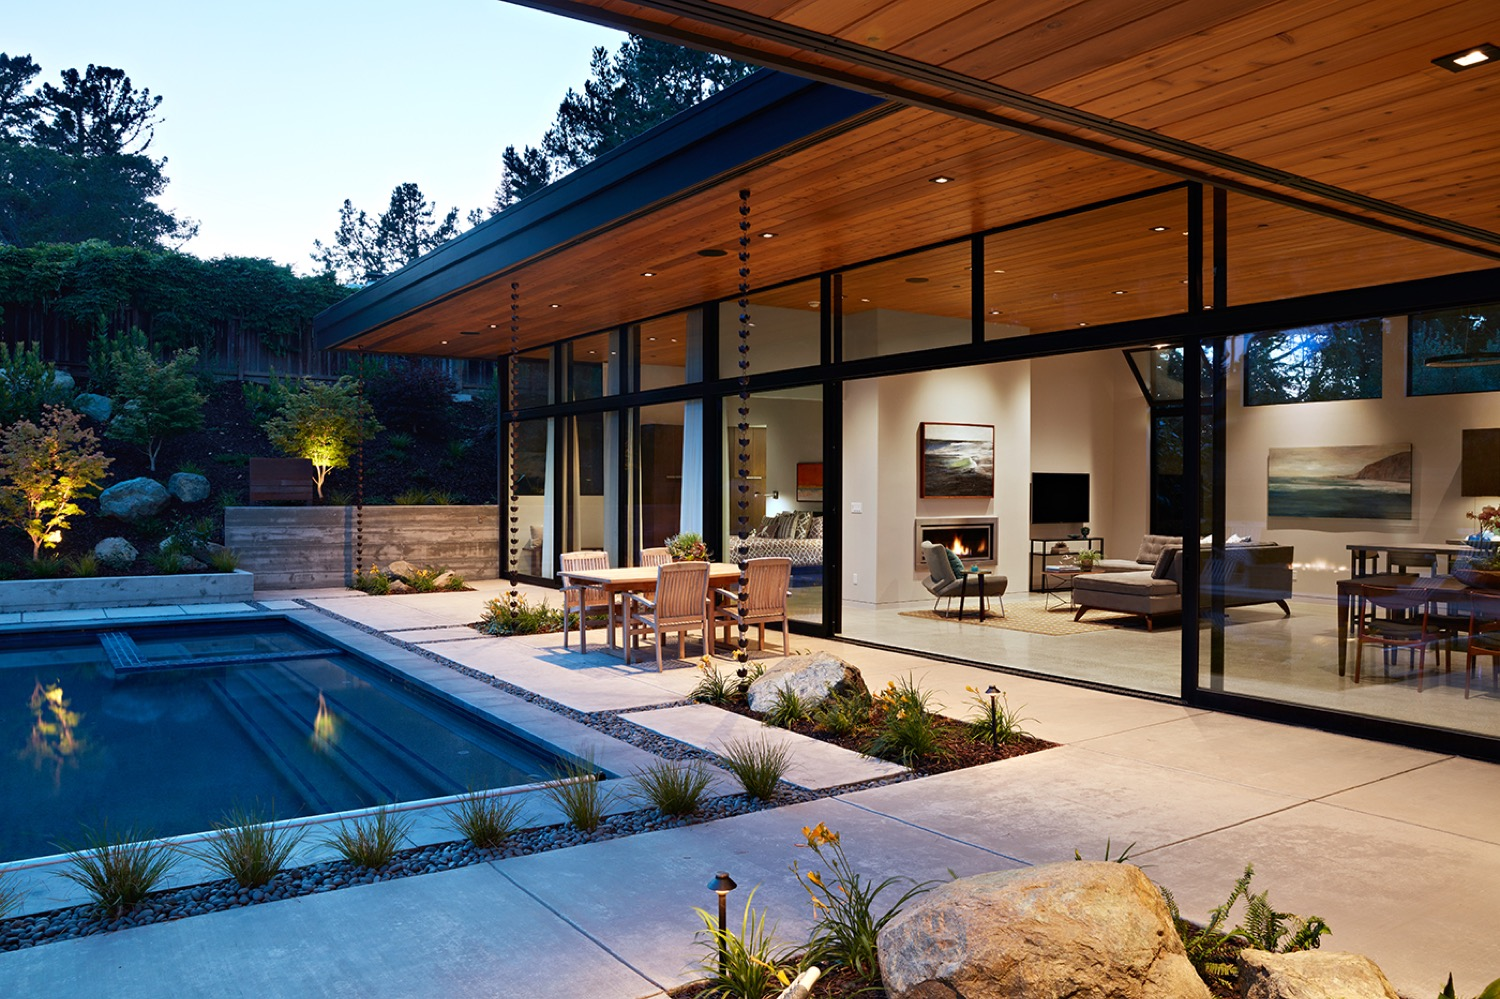 The wall of glass provides a pavilion-like look and feel.